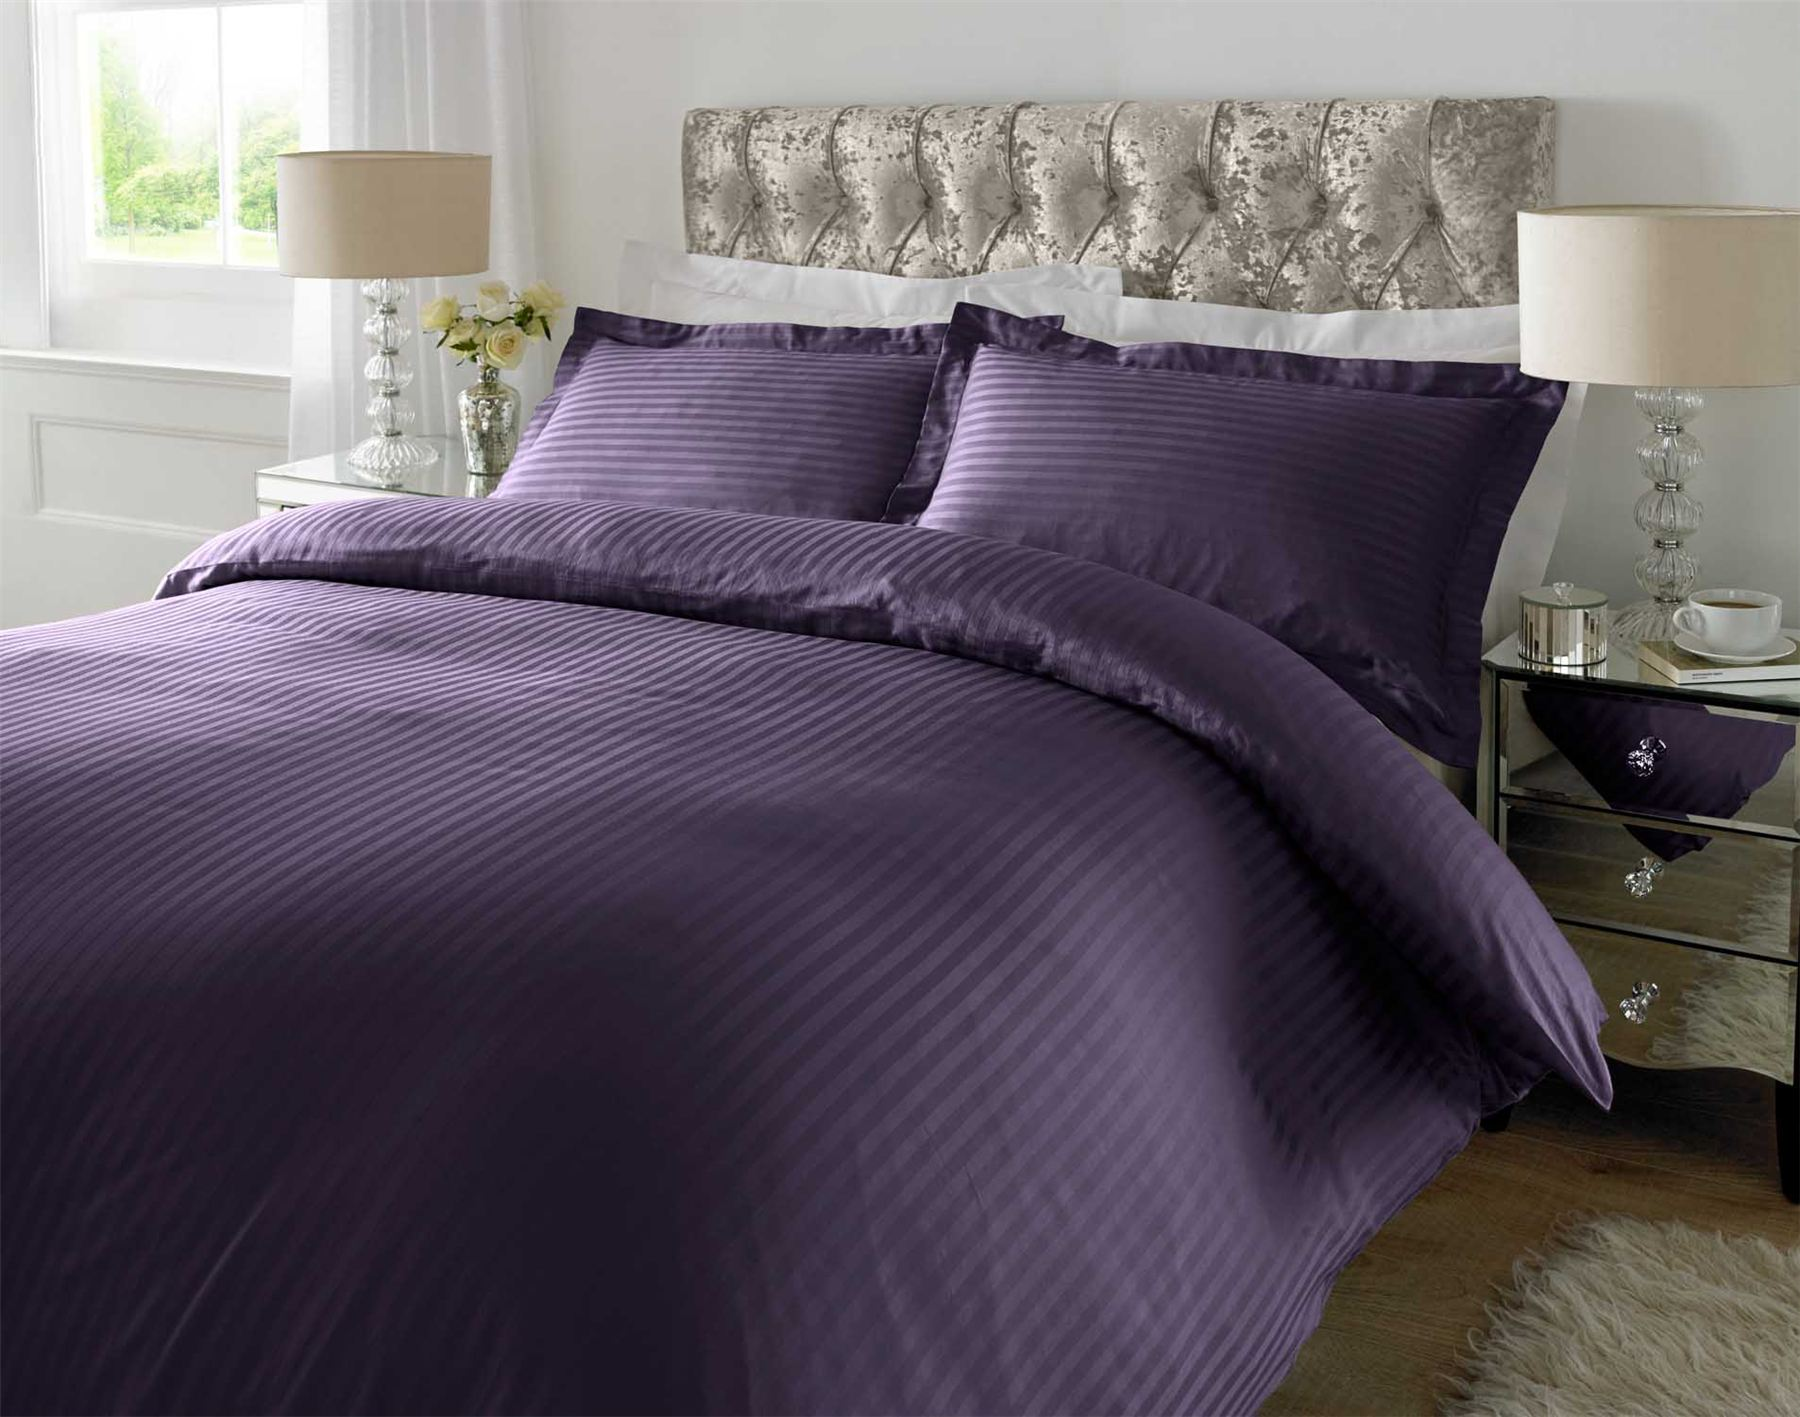 100 Cotton Luxury Duvet Cover Set Pillow Case Bedding